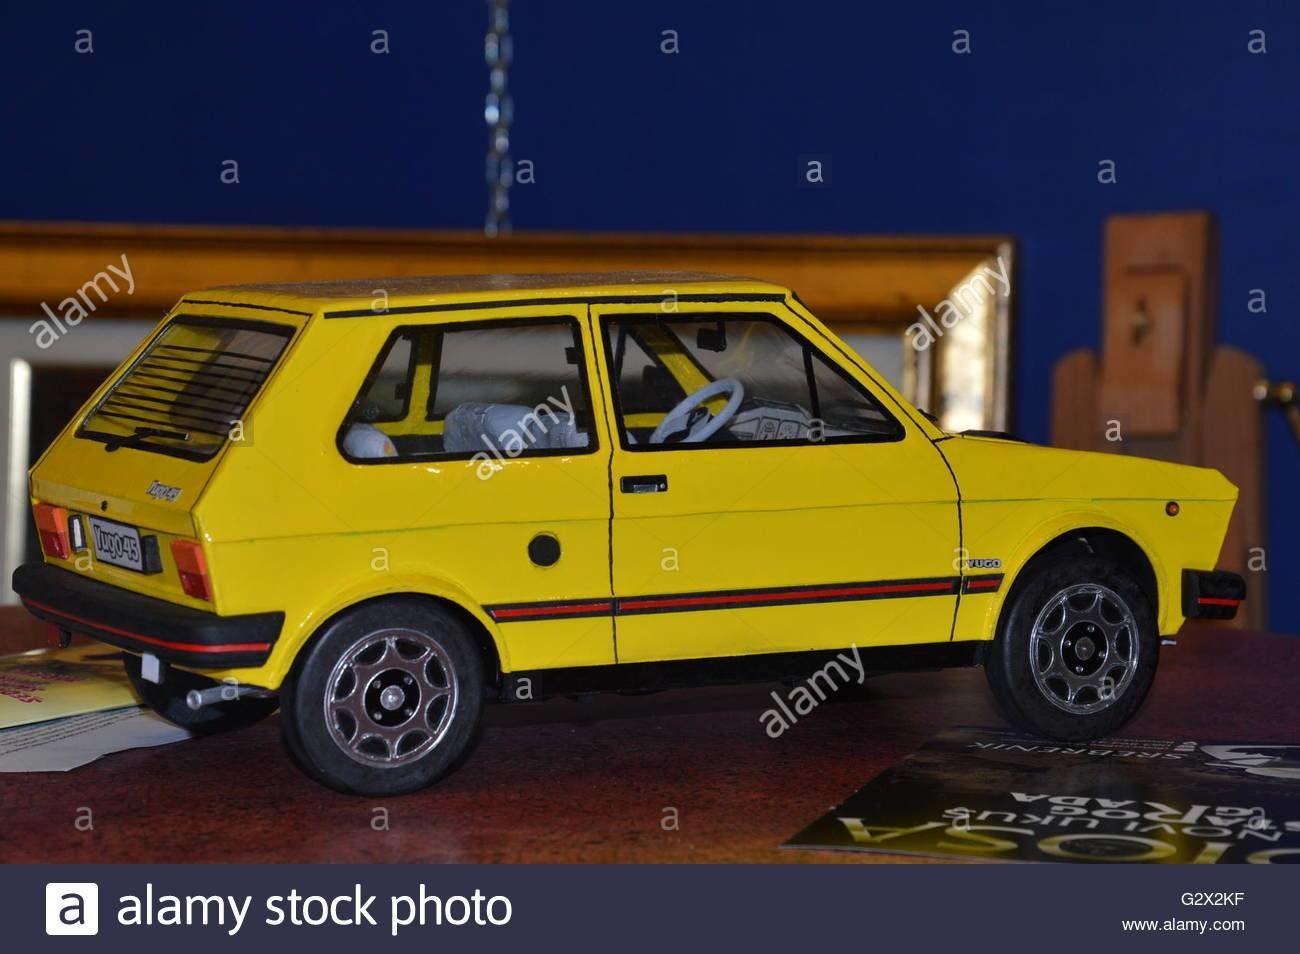 New Yugo Car Stock Photos Yugo Car Stock Images Alamy On This Month